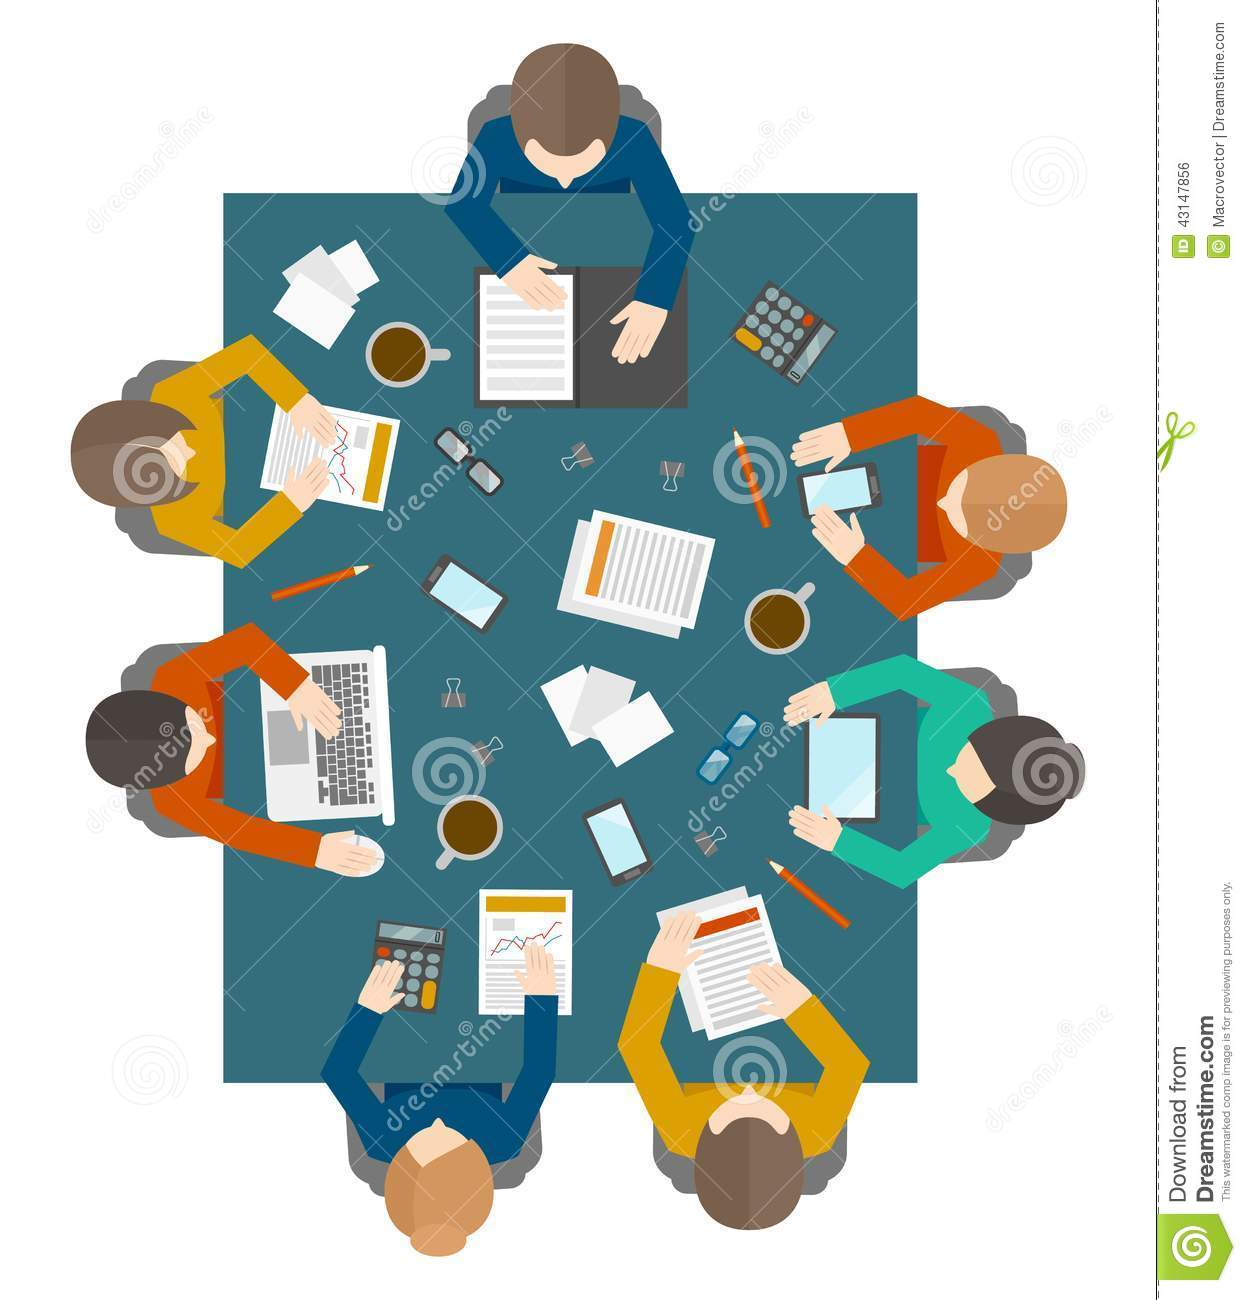 Round table meeting png - Business Meeting In Top View Stock Vector Image 43147856